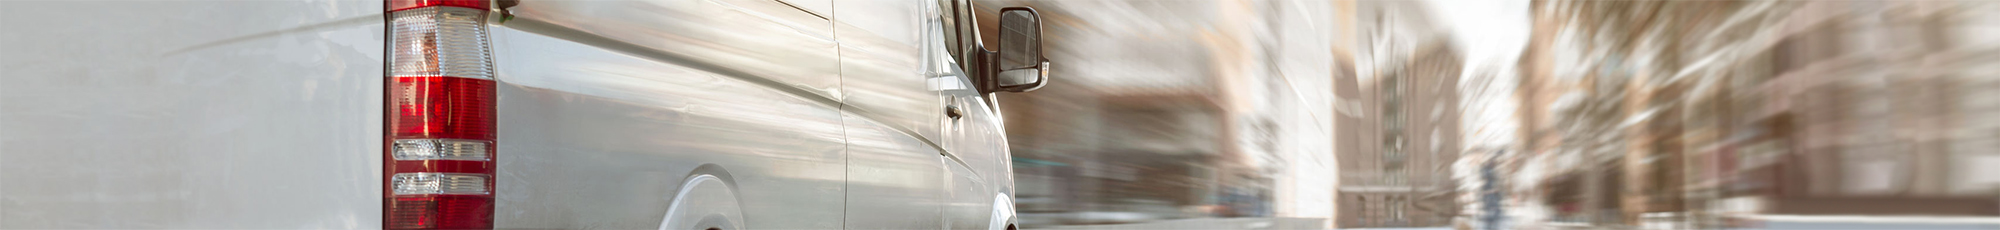 Business and Commercial Van Insurance